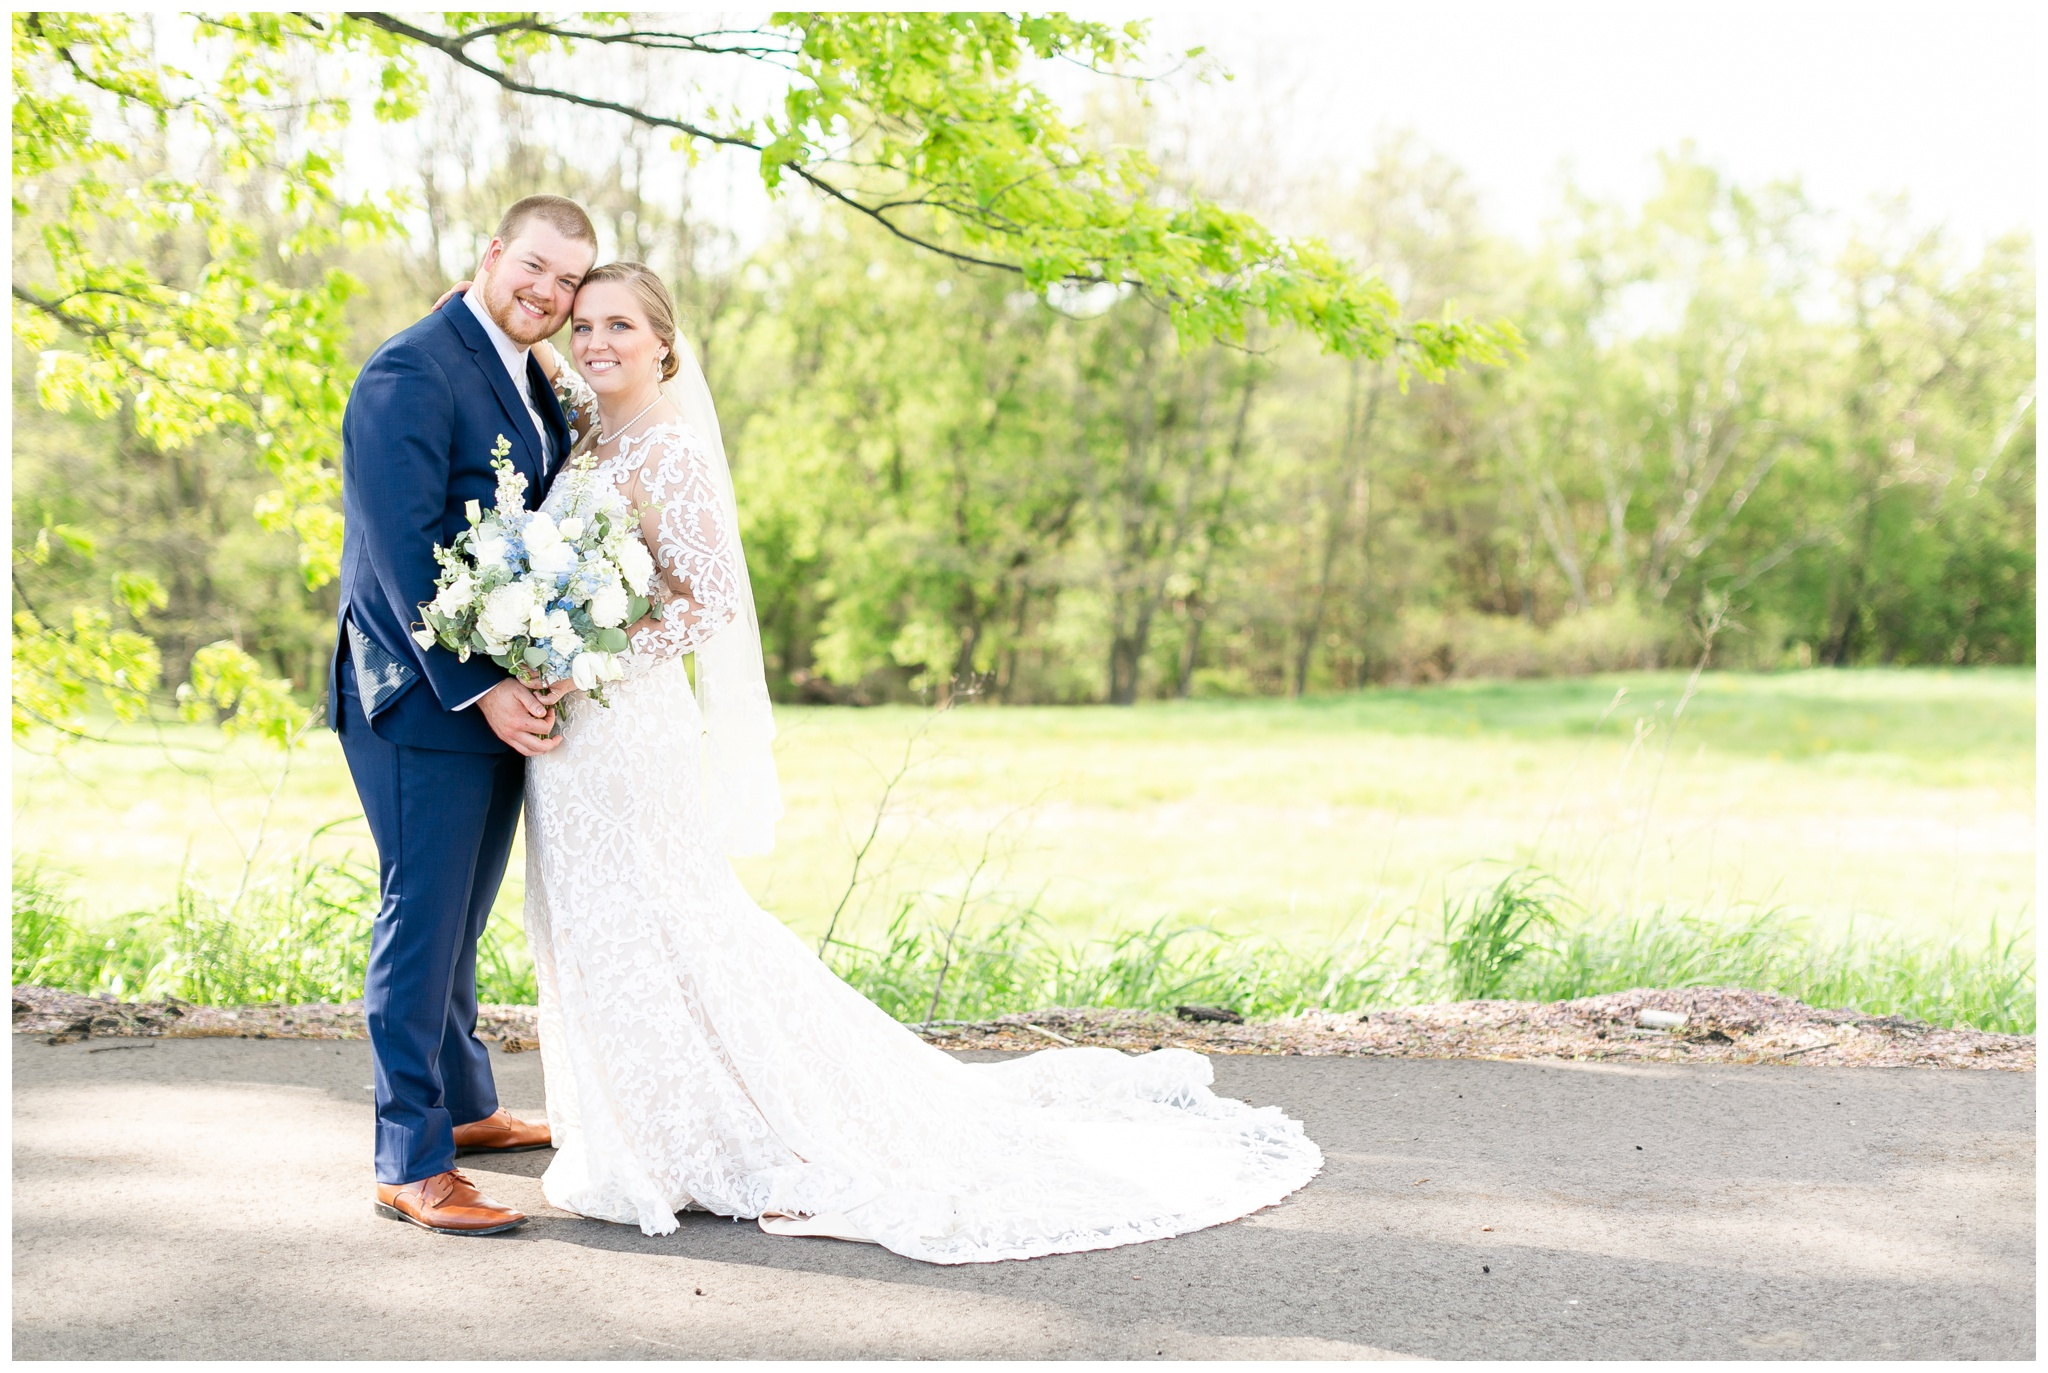 vennebu_hill_baraboo_wisconsin_wedding_madison_wisconsin_wedding_photographers_3035.jpg